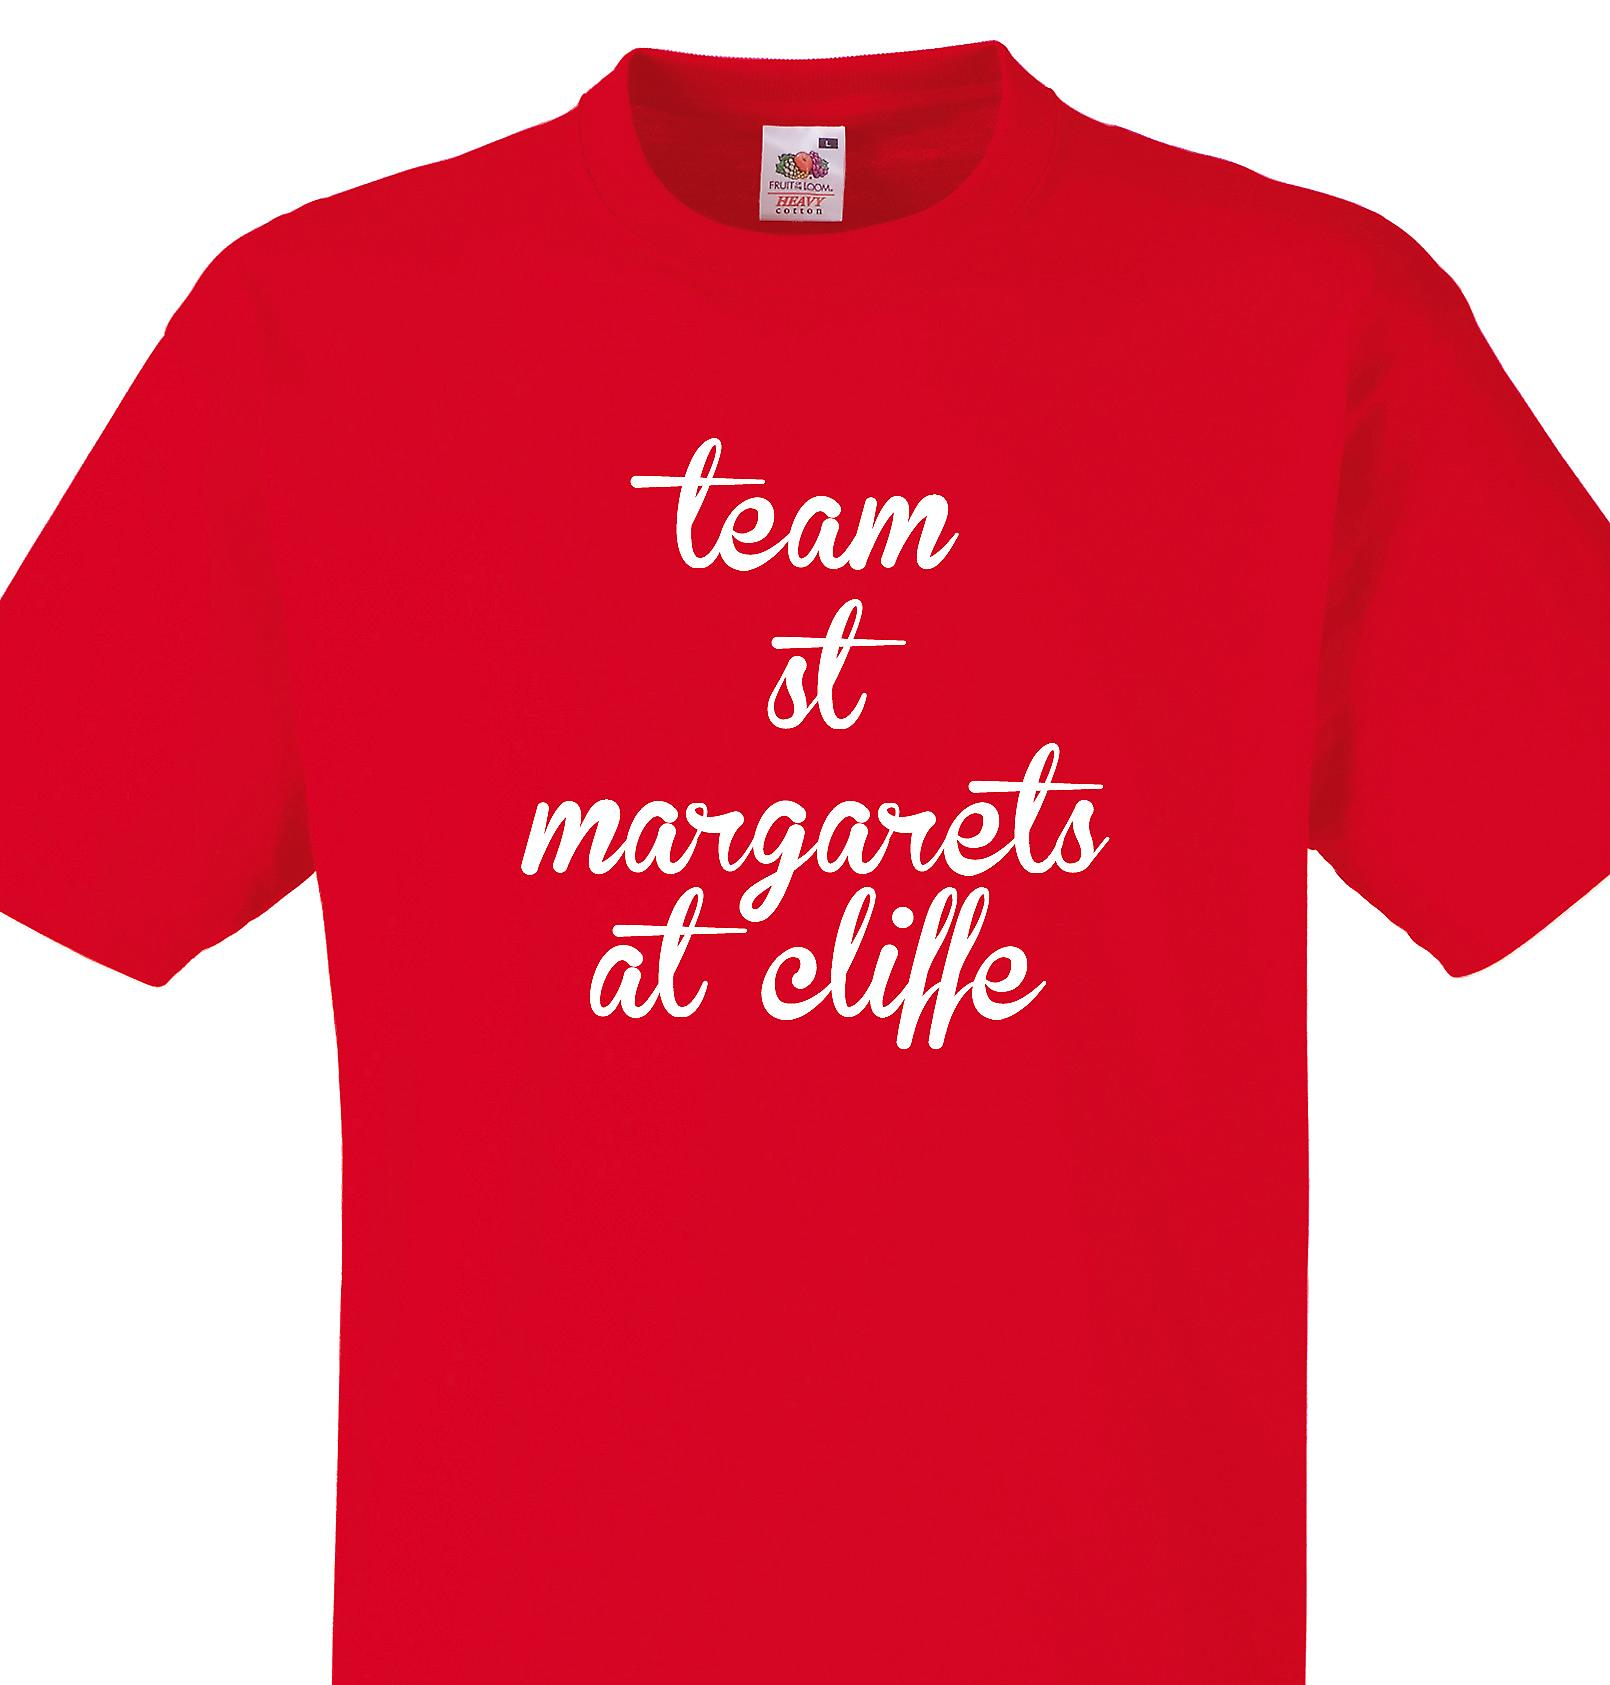 Team St margarets at cliffe Red T shirt